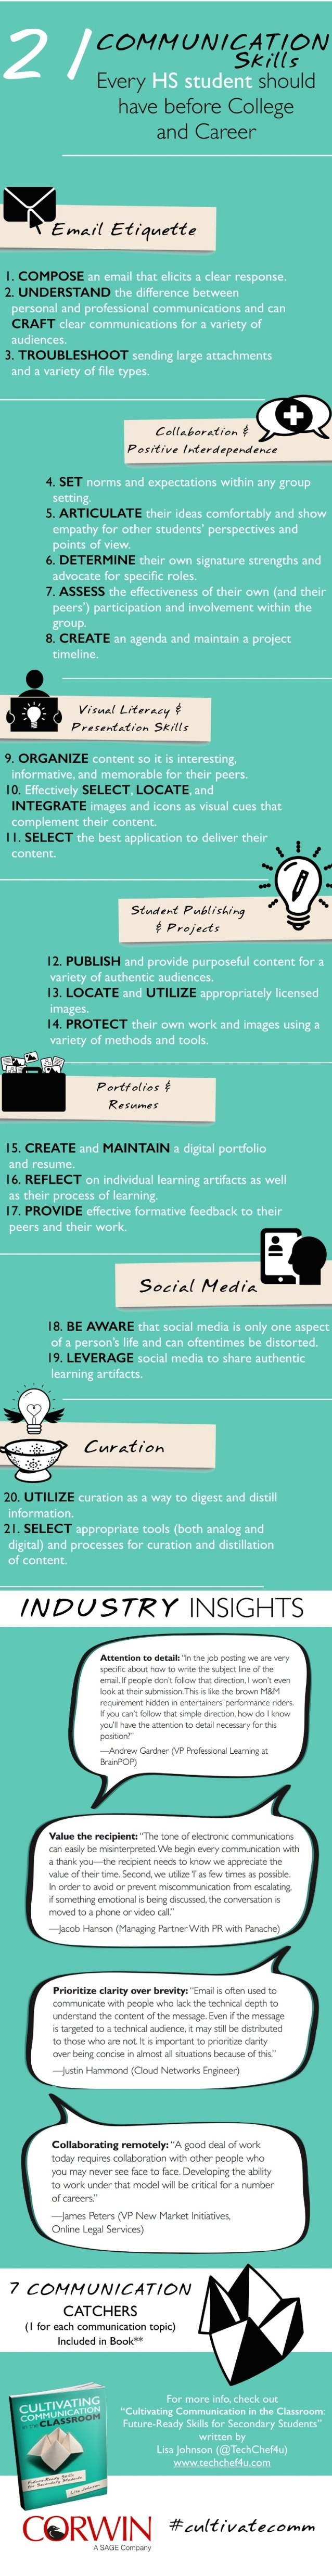 21 Communication Skills for Post High School Success Infographic